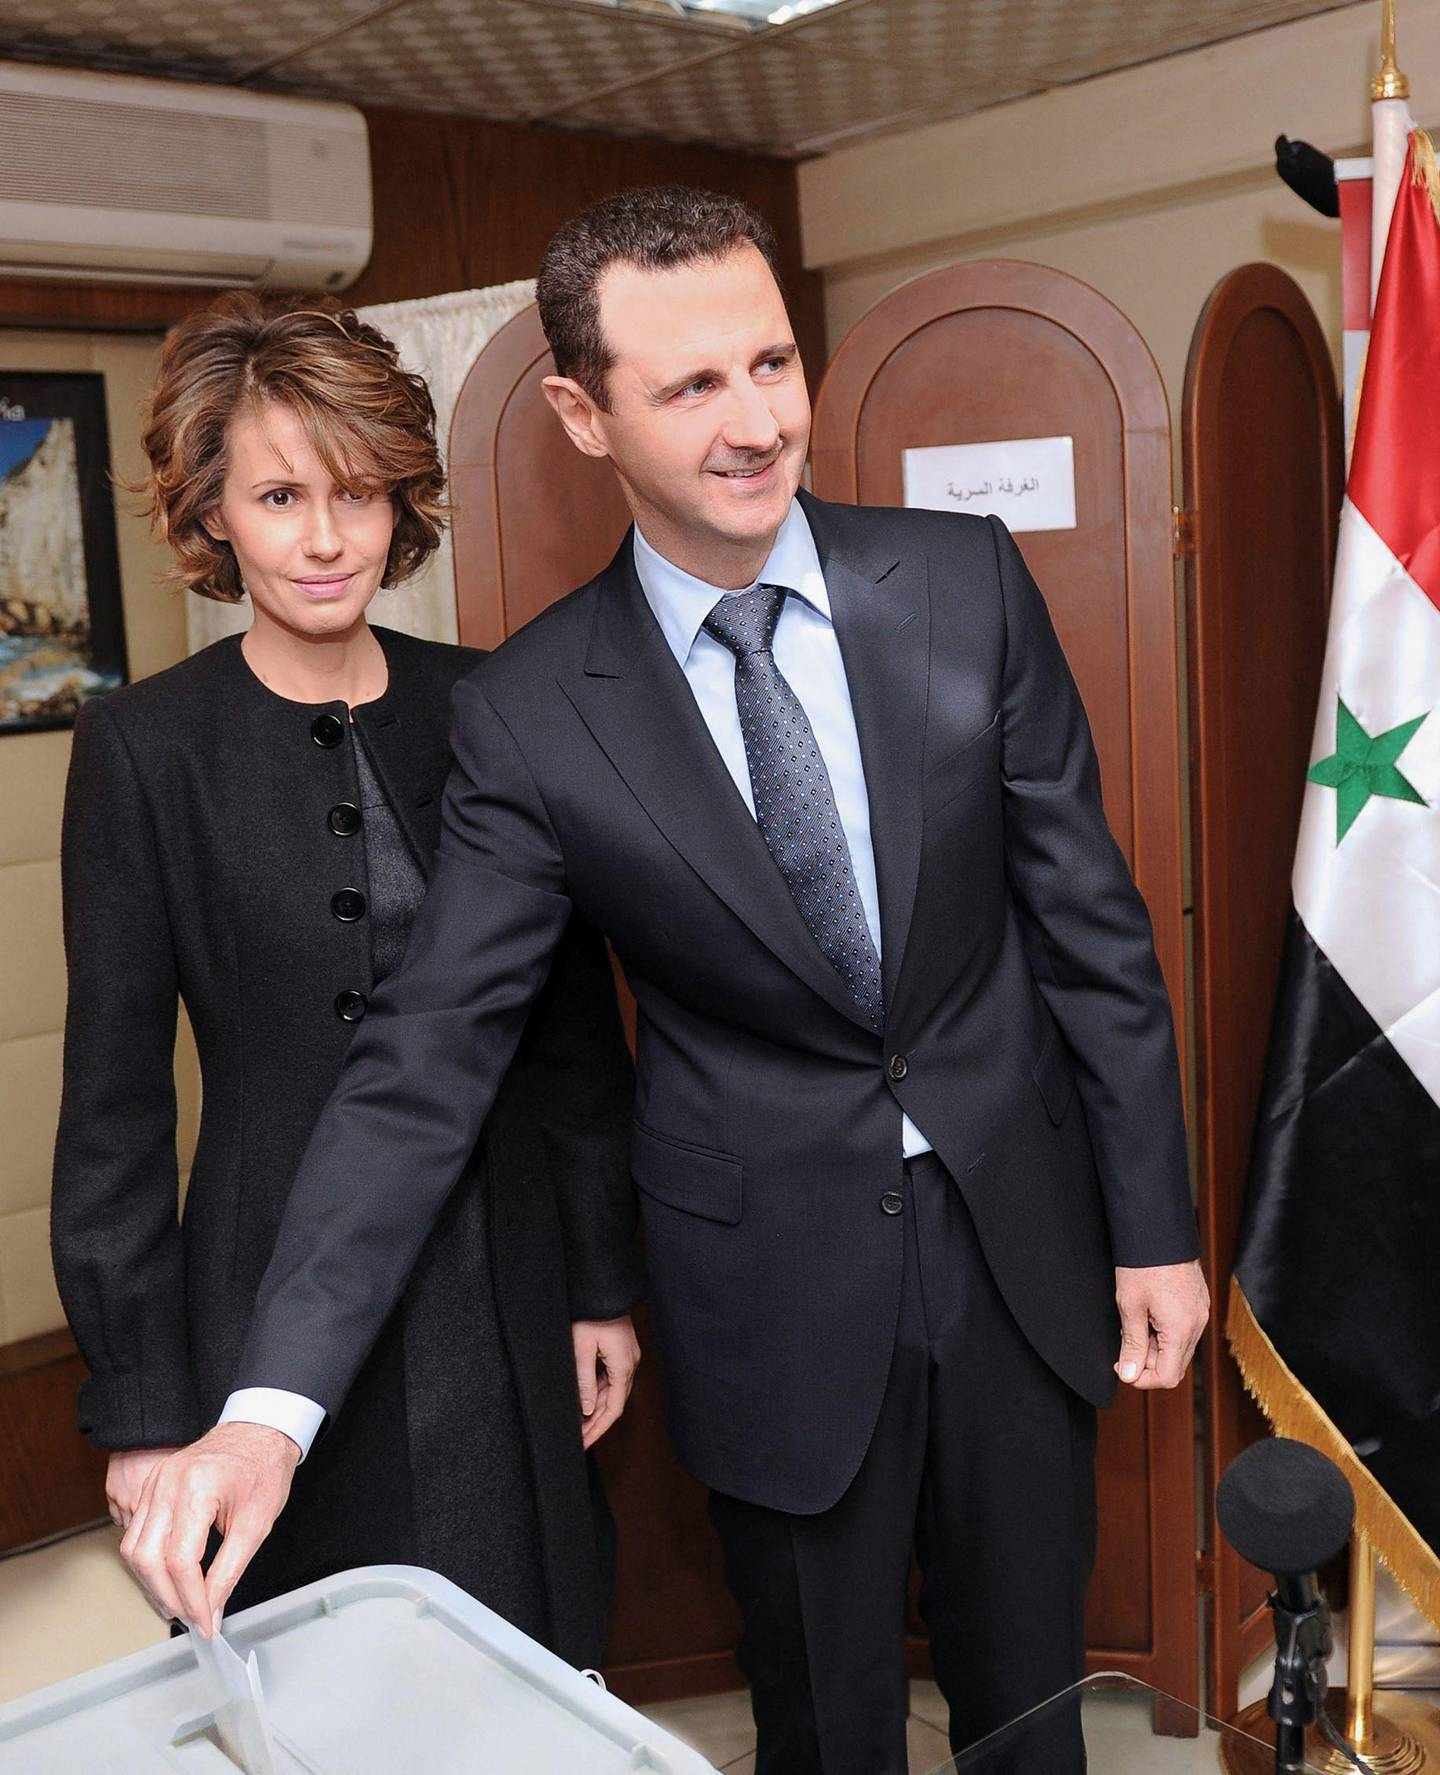 """(FILES) This file handout picture released by the Syrian Arab News Agency (SANA) shows Syrian President Bashar al-Assad (R) and his wife Asma (L) voting on the constitution that could end five decades of single-party domination in Damascus. A decade of war may have ravaged his country, but Syria's President Bashar al-Assad has clung to power and looks determined to cement his position in presidential elections this year. / AFP / SANA / - / RESTRICTED TO EDITORIAL USE - MANDATORY CREDIT """"AFP PHOTO / HO / SANA"""" - NO MARKETING NO ADVERTISING CAMPAIGNS - DISTRIBUTED AS A SERVICE TO CLIENTS"""